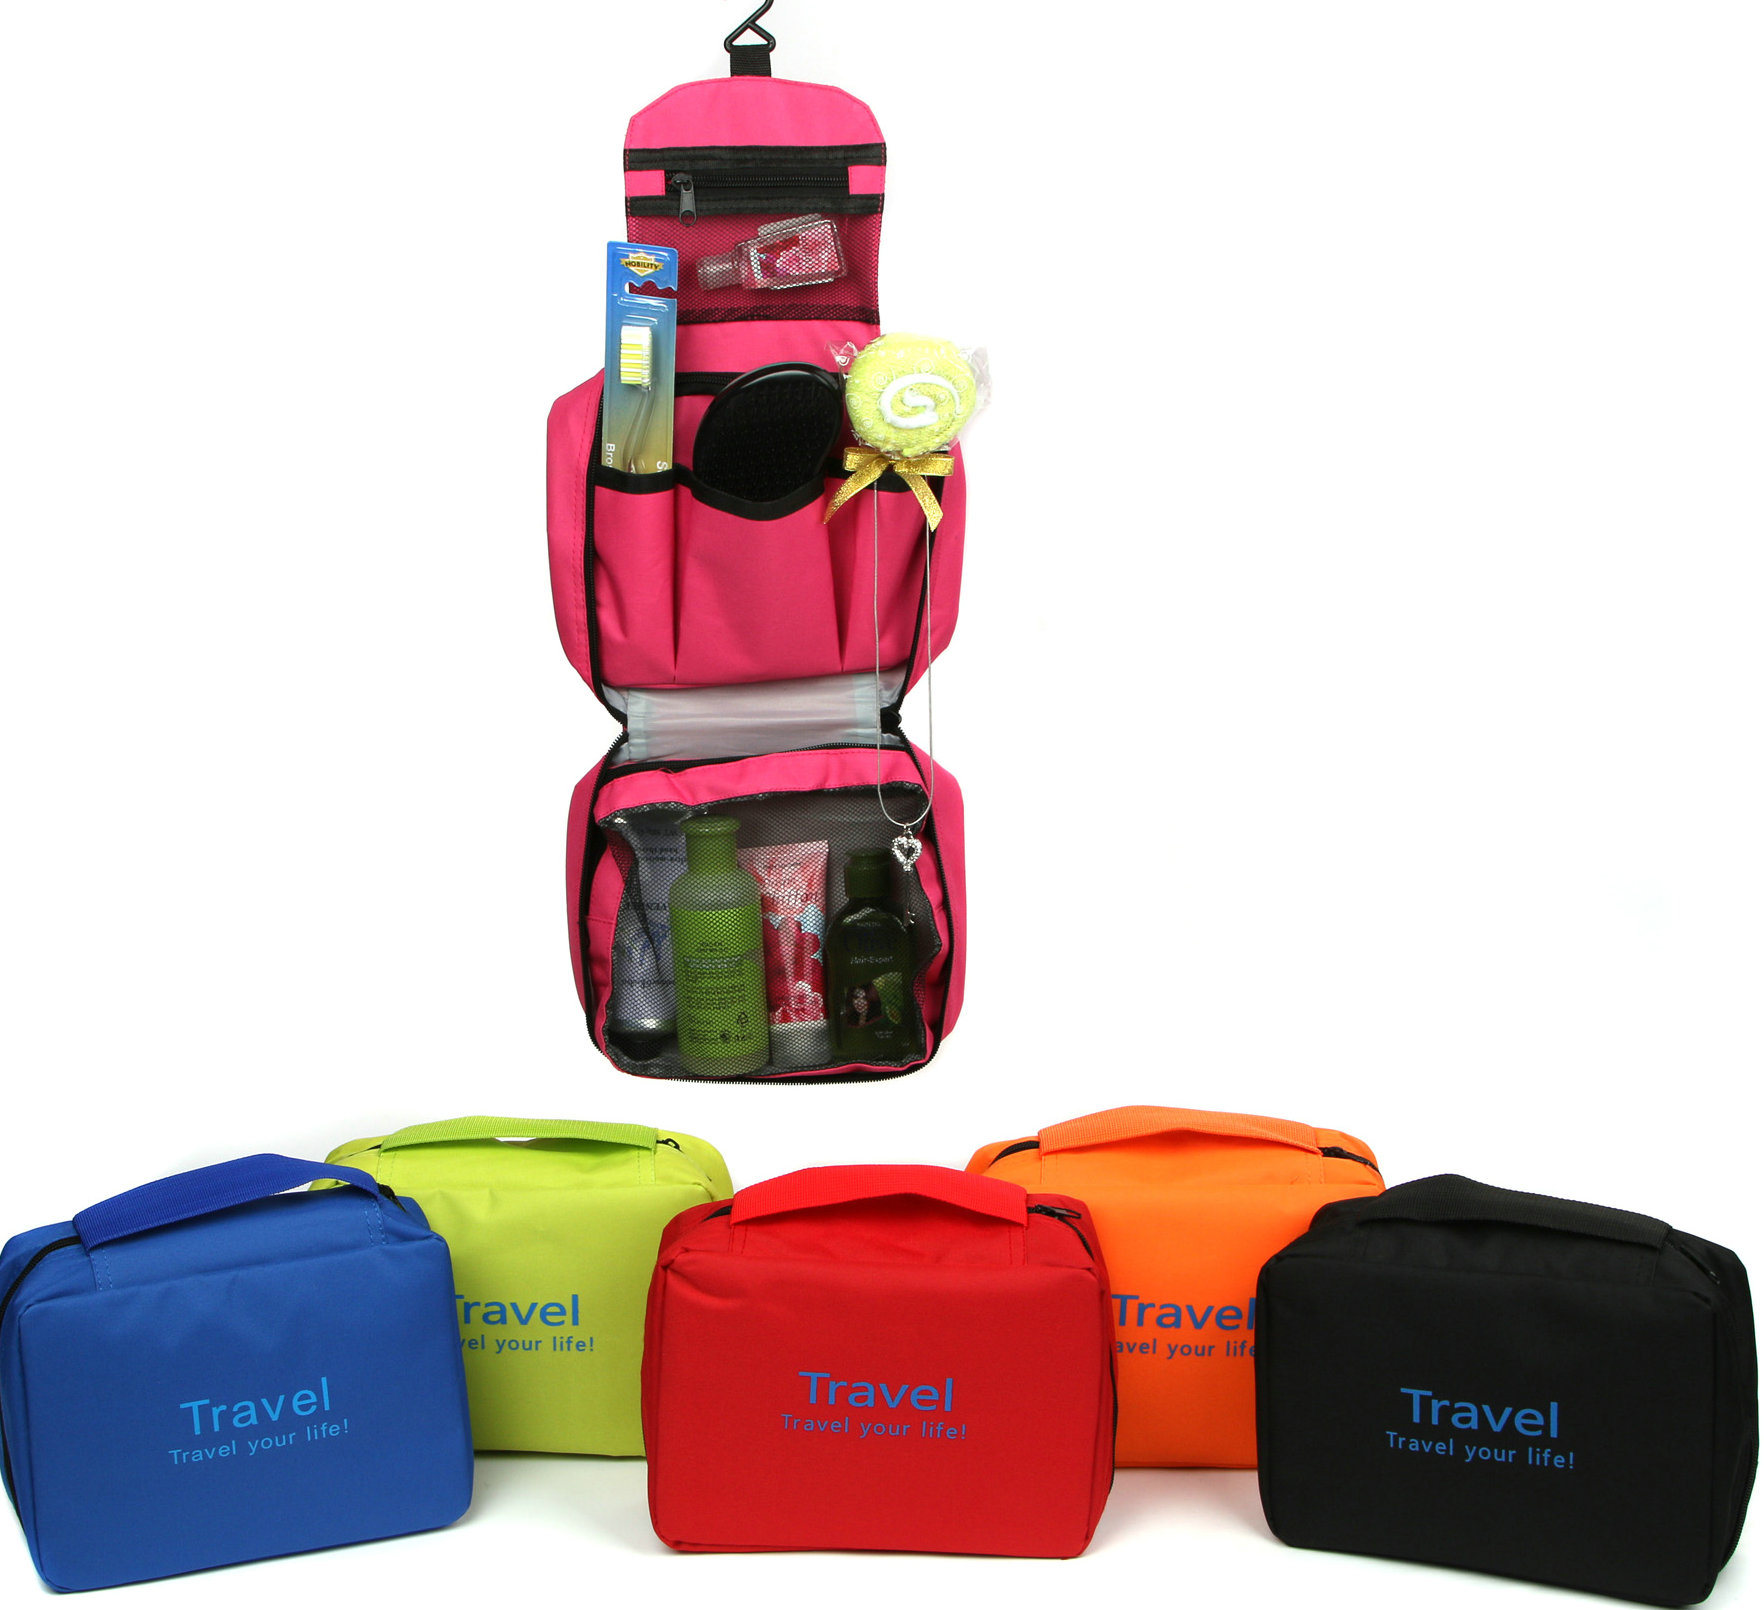 Storage Bag for Travel, Leisure Bag